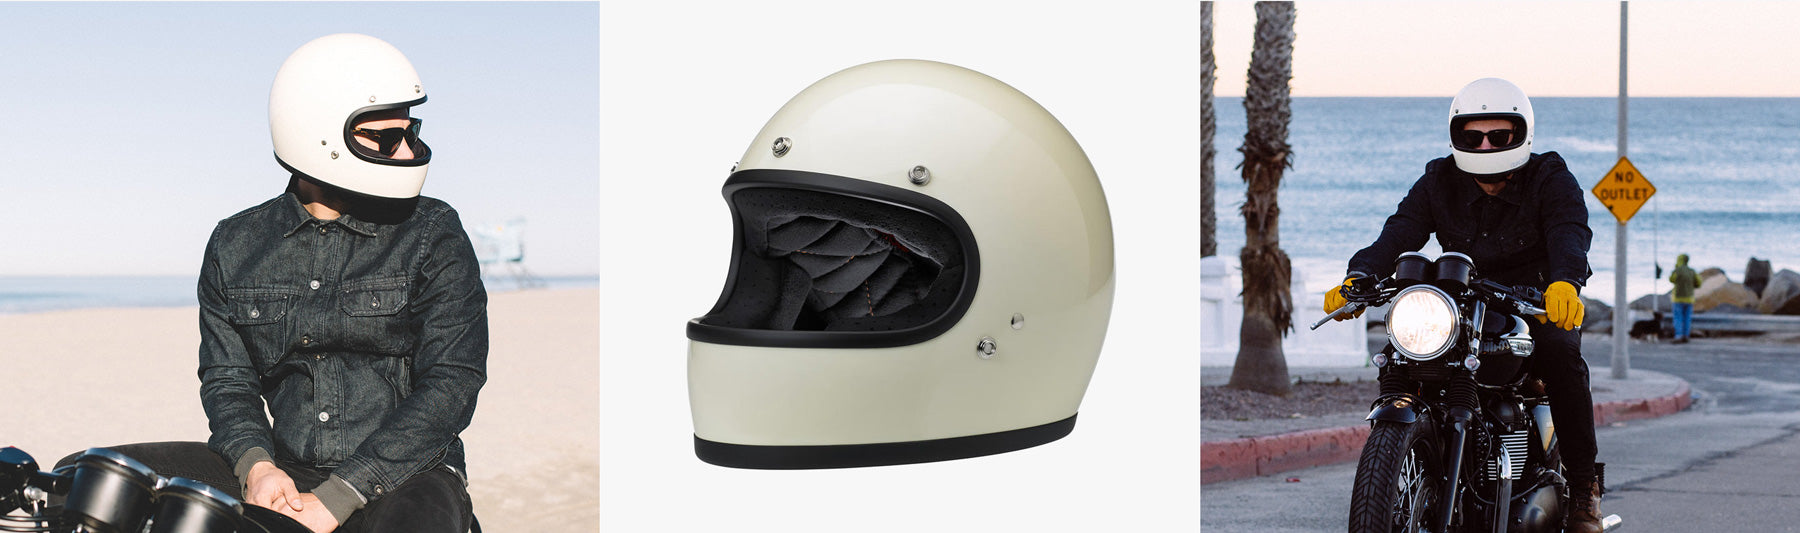 Biltwell Gringo Helmet from British Customs